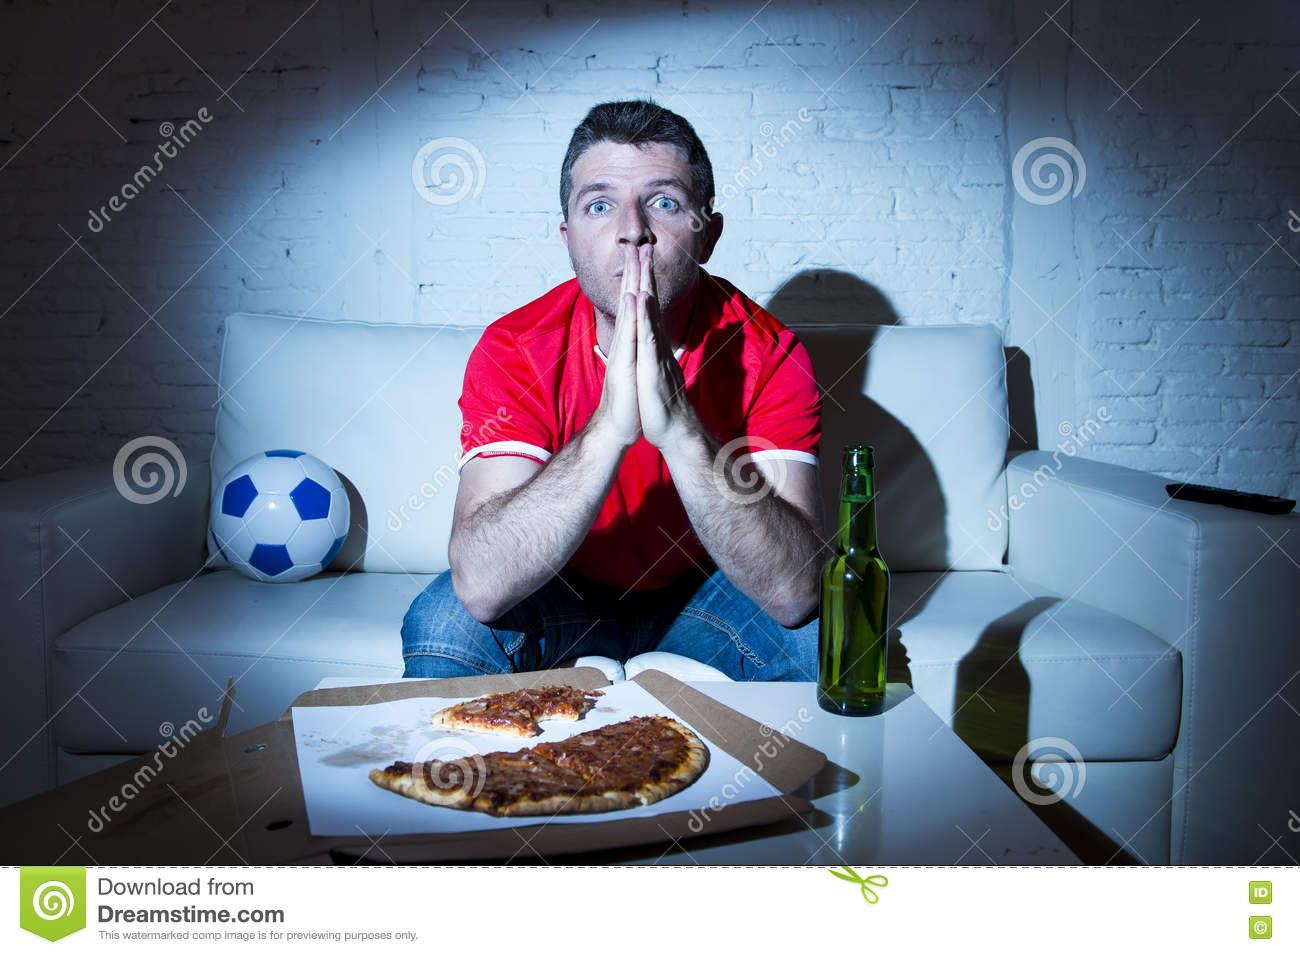 Football Fan Man Watching Game On Tv In Team Jersey Nervous